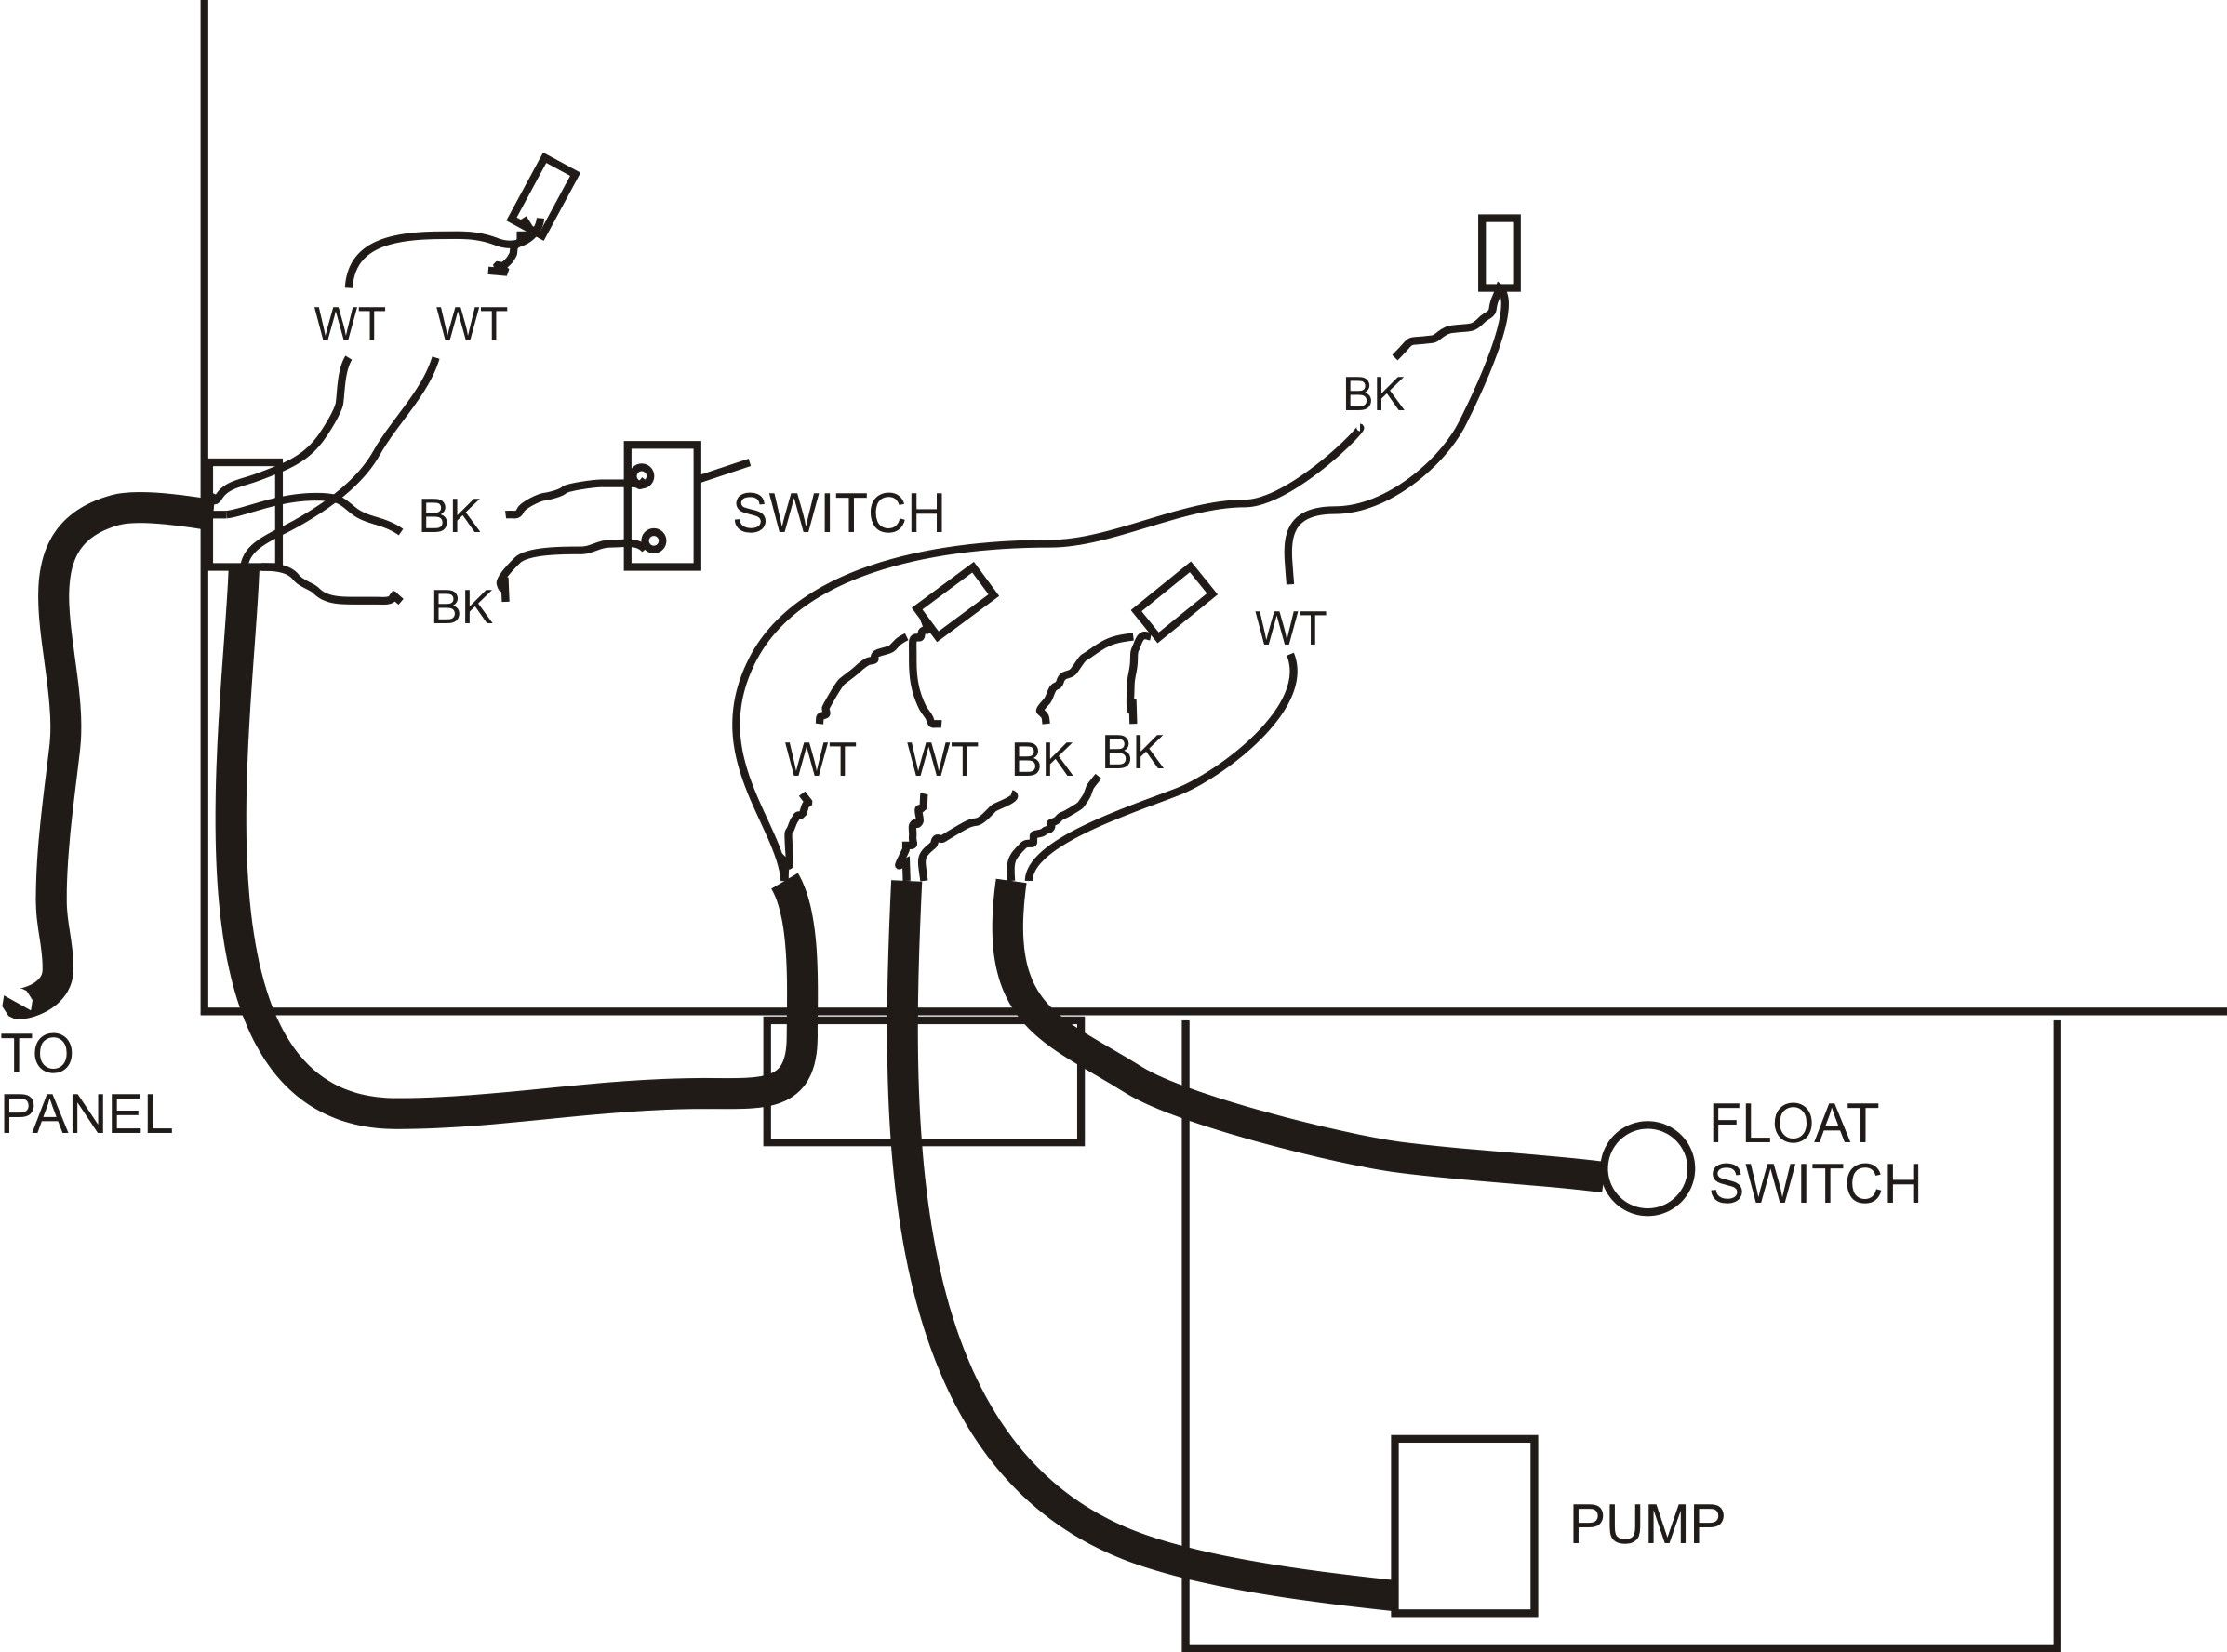 Wiring Diagram For Well Pump Pressure Switch from i.pinimg.com